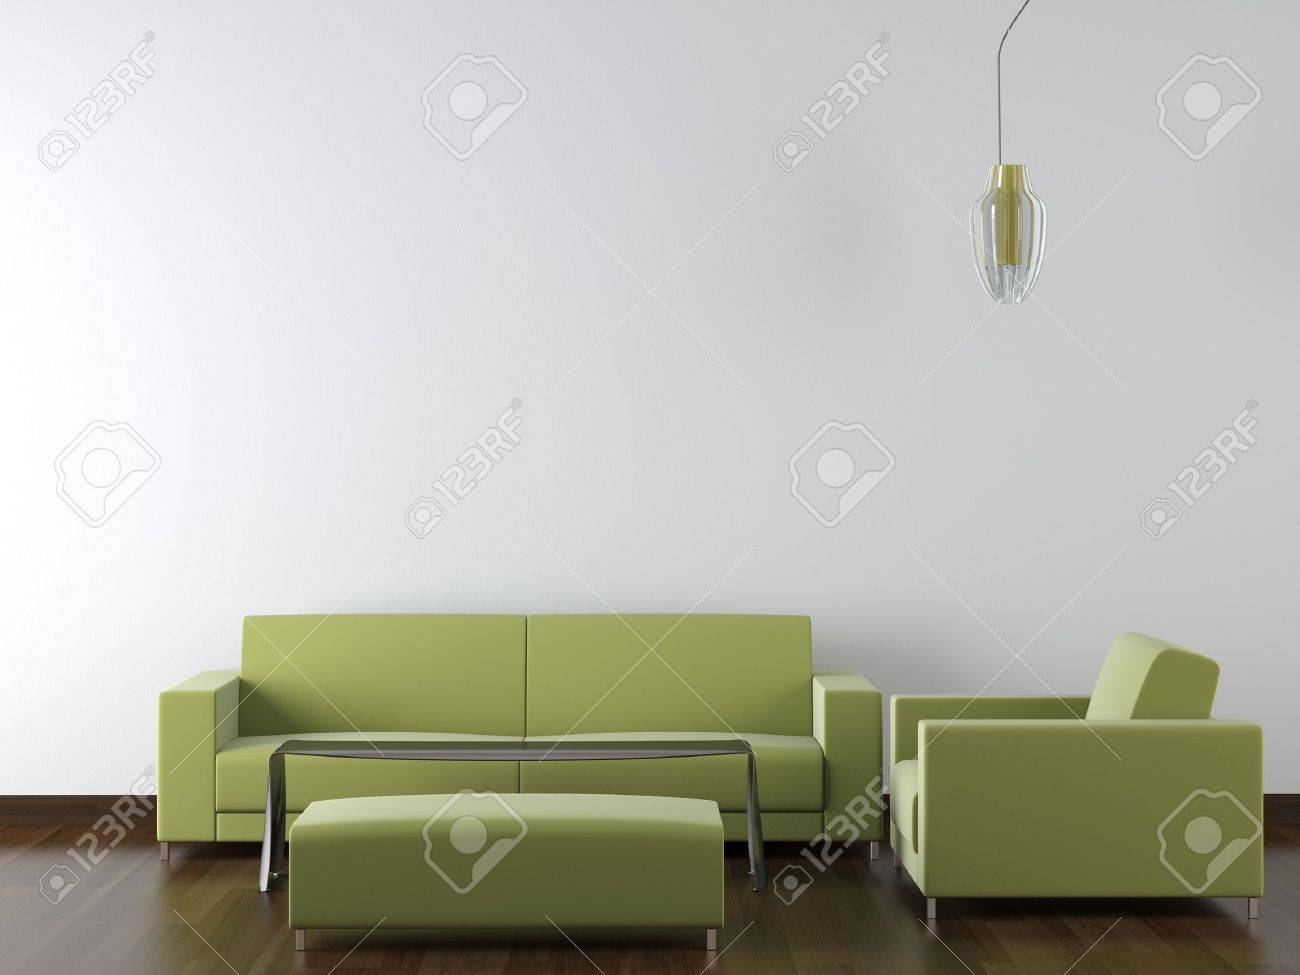 Modern living room furniture green - Interior Design Of Modern Green Living Room Furniture Against White Wall With A Lamp Hanging And